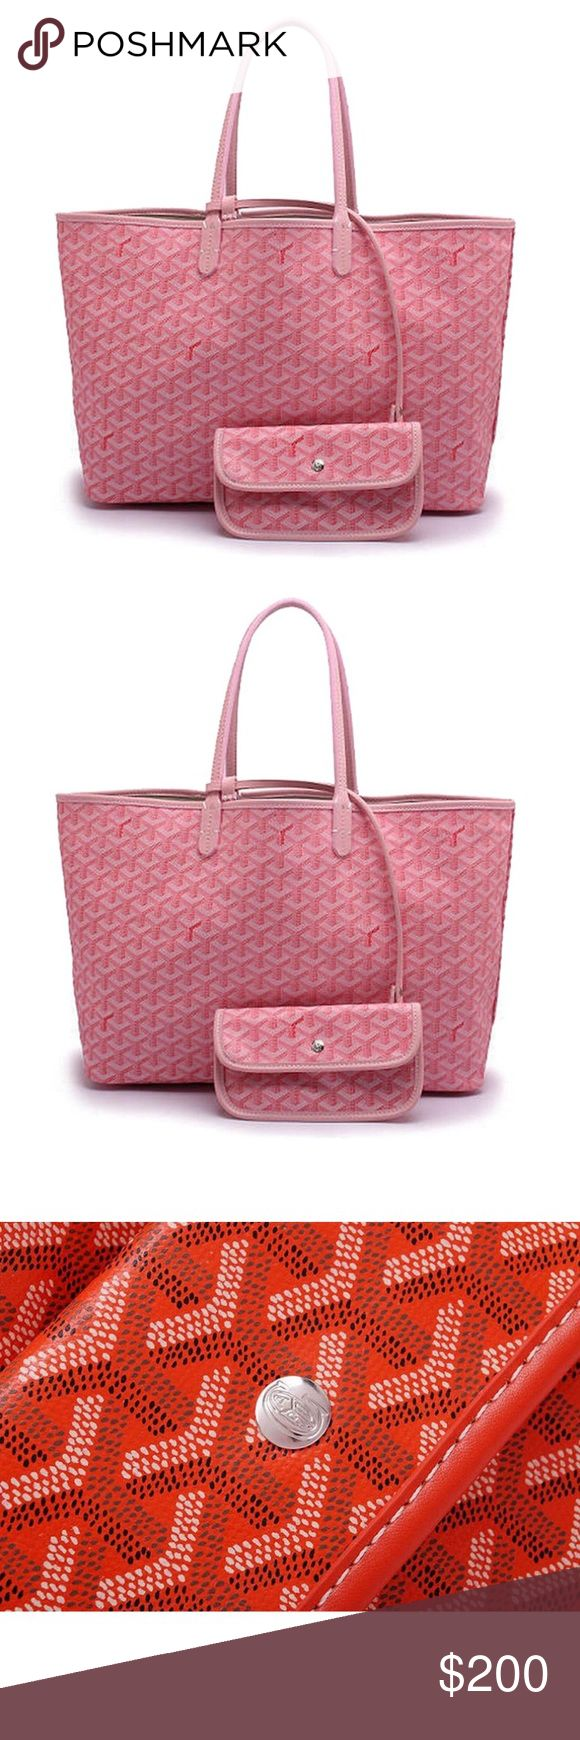 Pink Goyard St Luis PM Tote w/Matching Wallet $200 This is an inspired Goyard Pm Tote with Wallet Attached in this Pretty in Pink Color. Very nice and Close to Actual Tote but for a fraction of the Cost! $200 instead of $2000. goyard Bags Totes